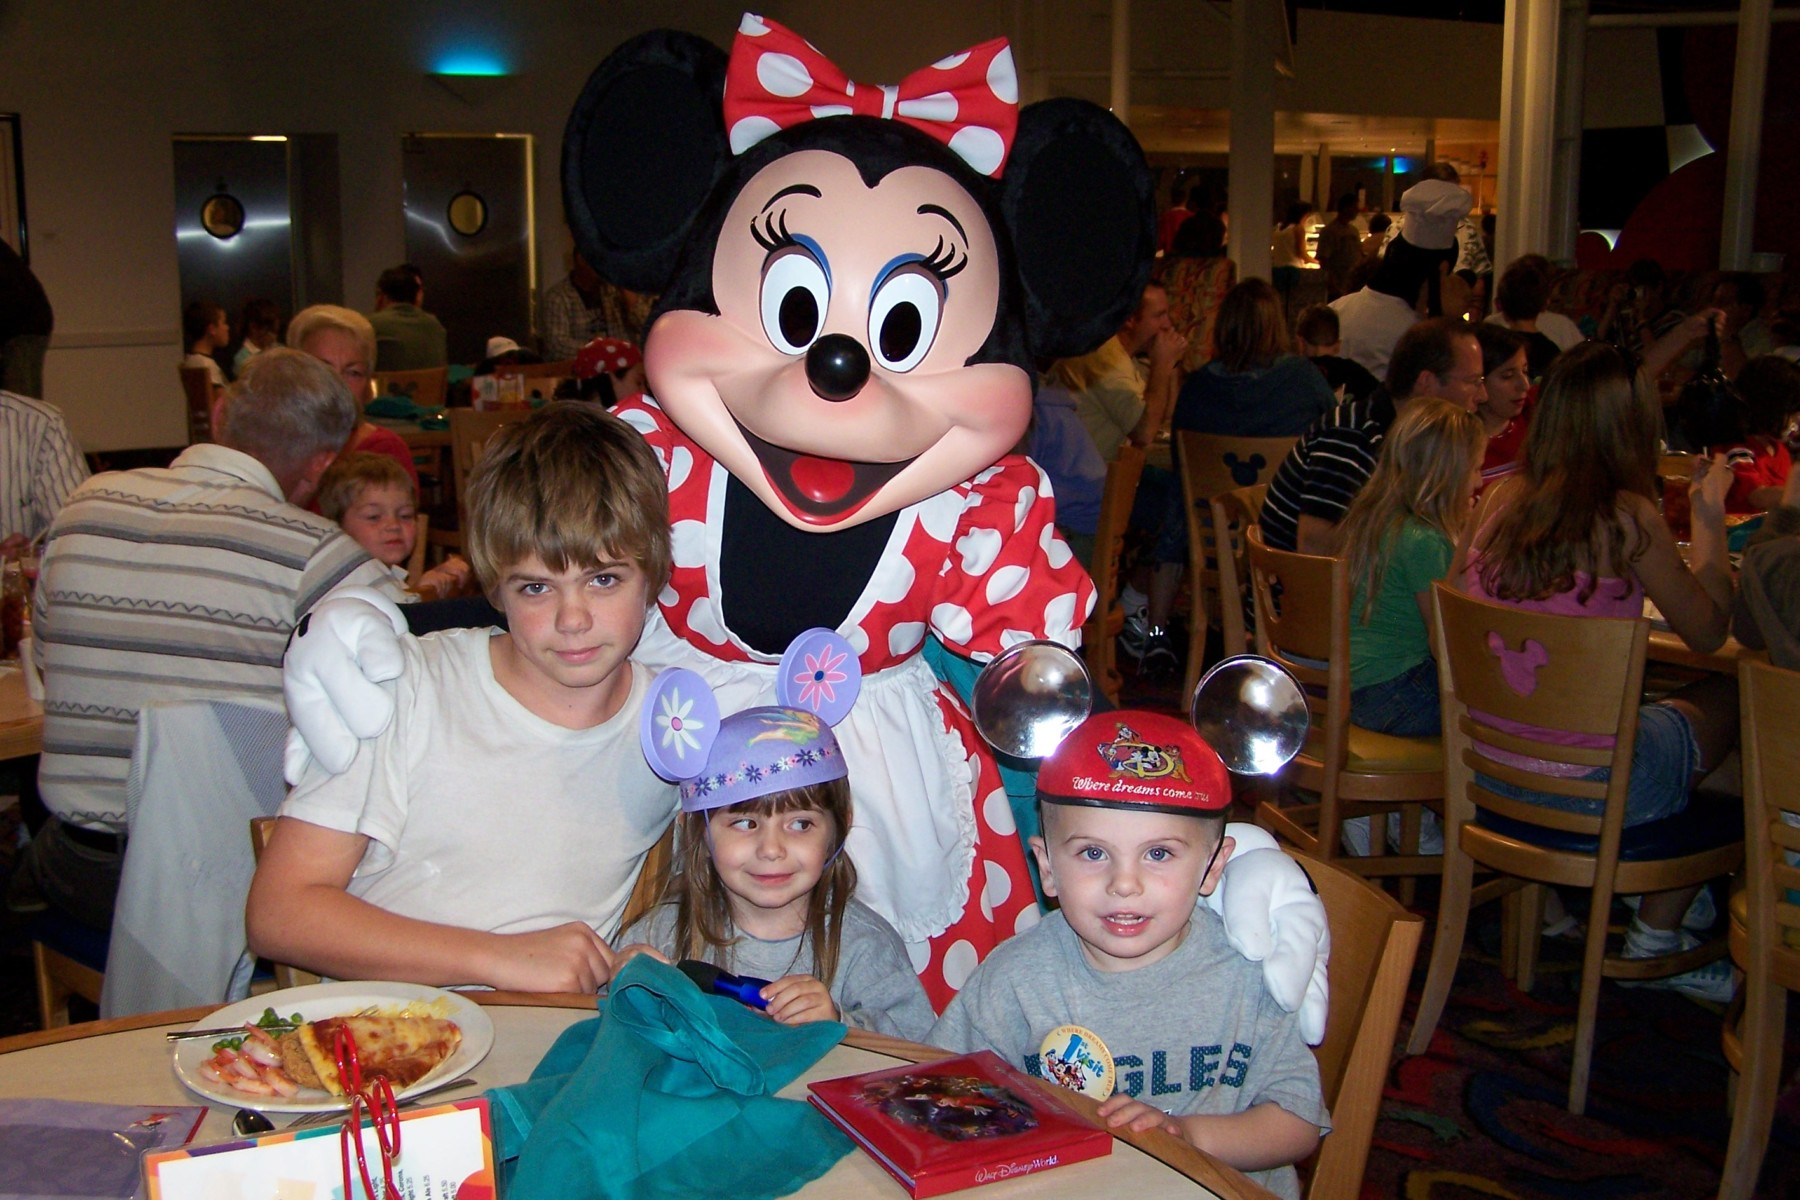 Need a Walt Disney World guide? That's what #TMOM is here for. Join our next #TMOM Twitter Party to discuss the latest and greatest WDW vacation strategies.